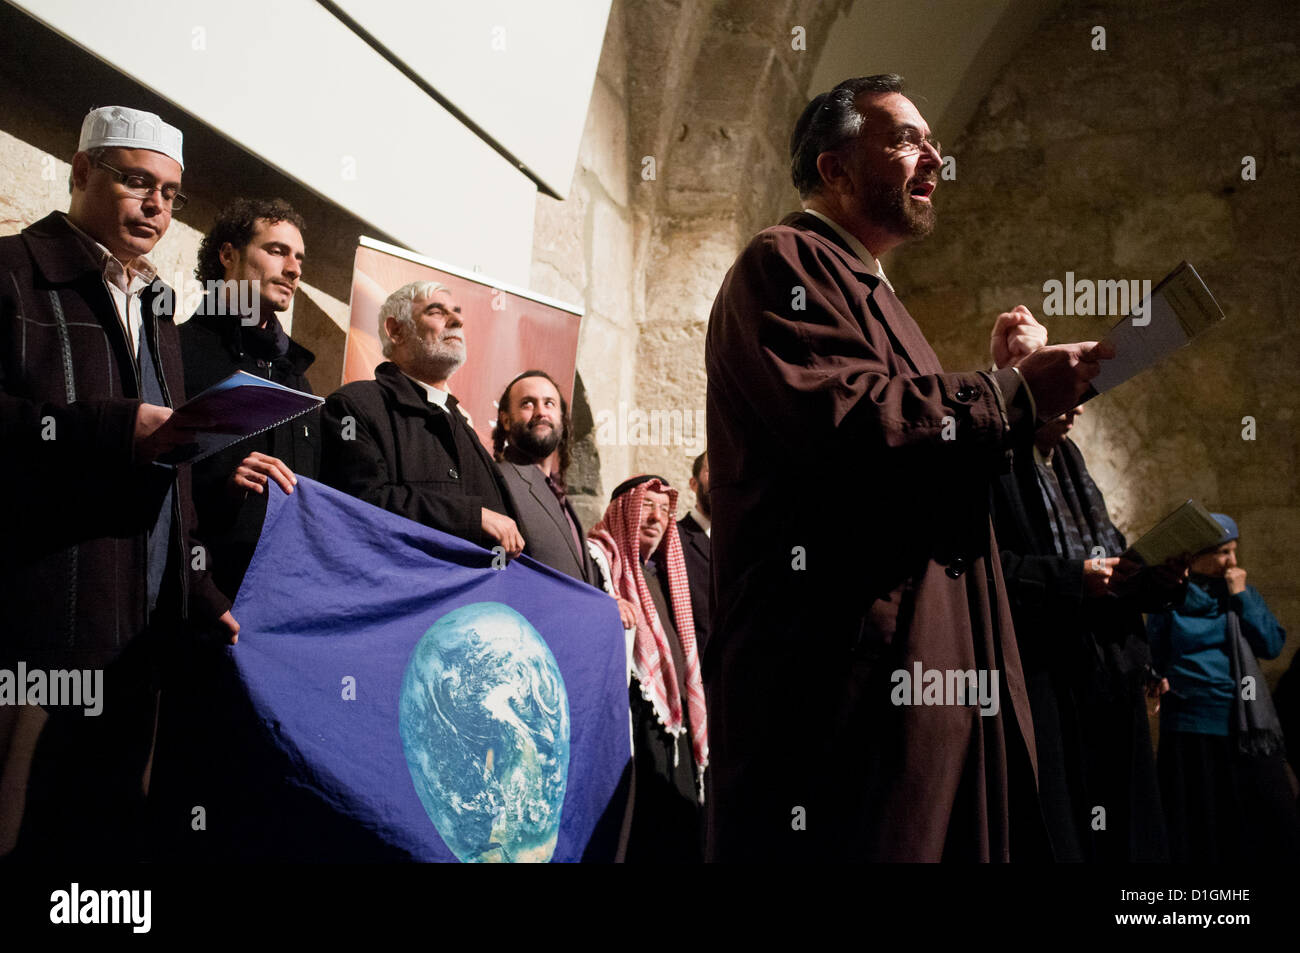 Jerusalem, Israel. 21st December 2012. Rabbi David Rosen addresses participants at an interfaith prayer of unity - Stock Image